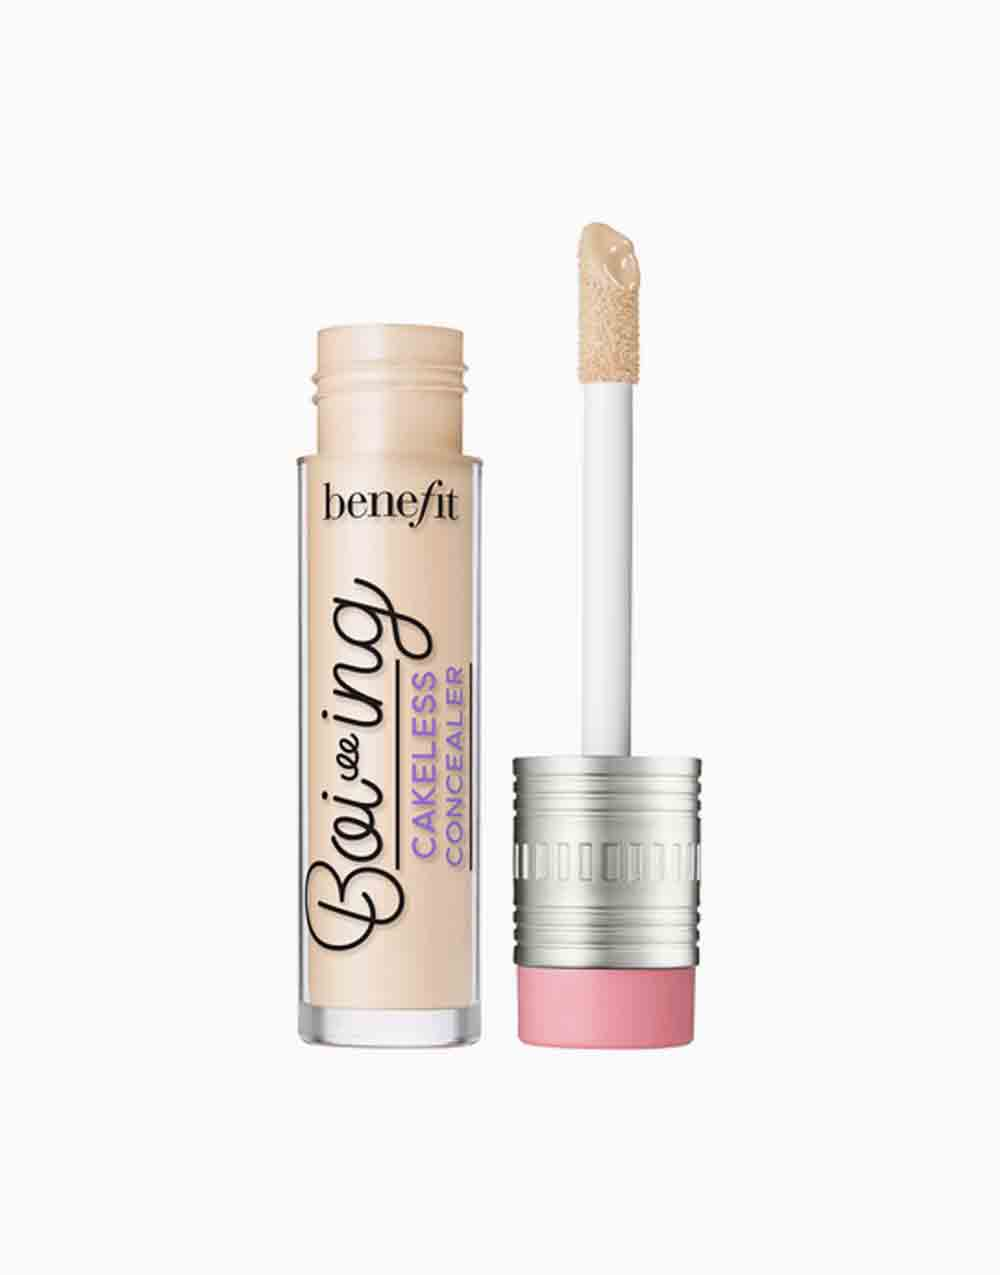 Boi-ing Cakeless Concealer by Benefit | Shade 2